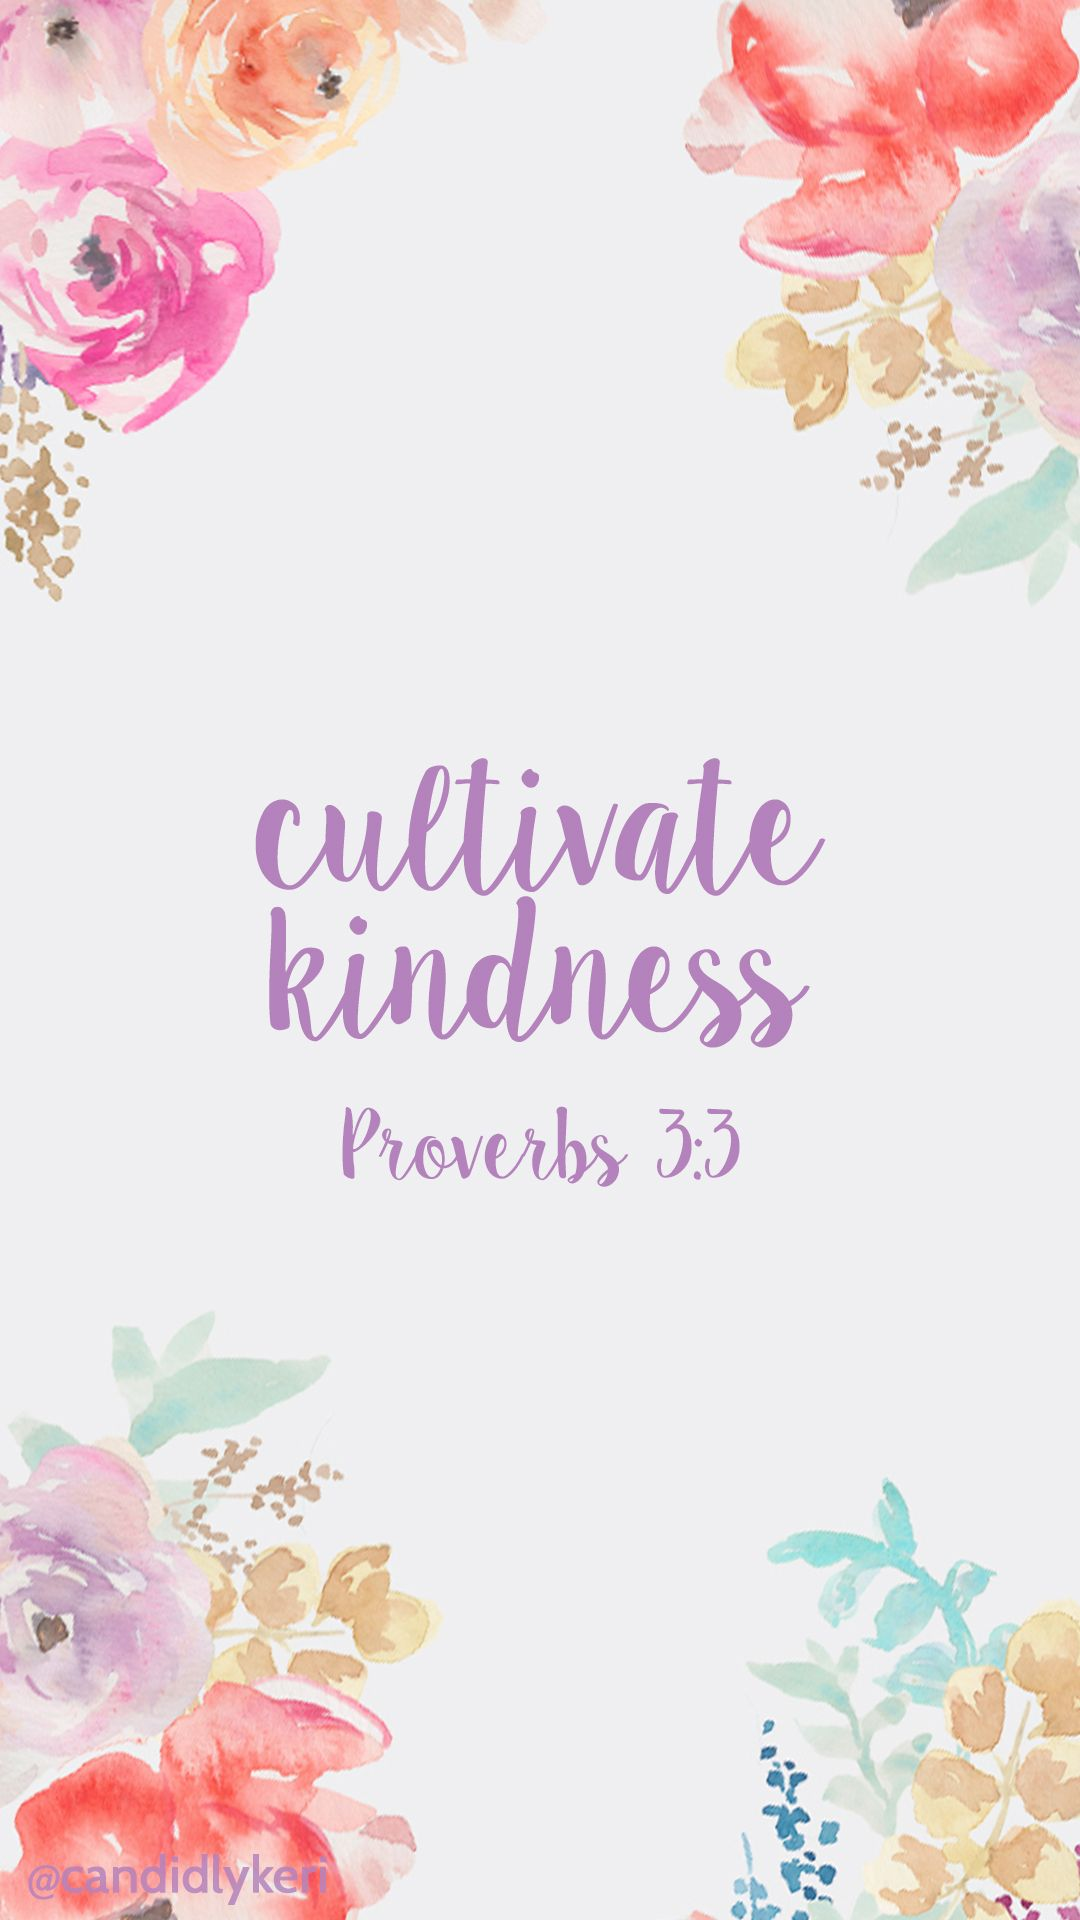 cultivate kindness pray proverbs quote bible background wallpaper you can